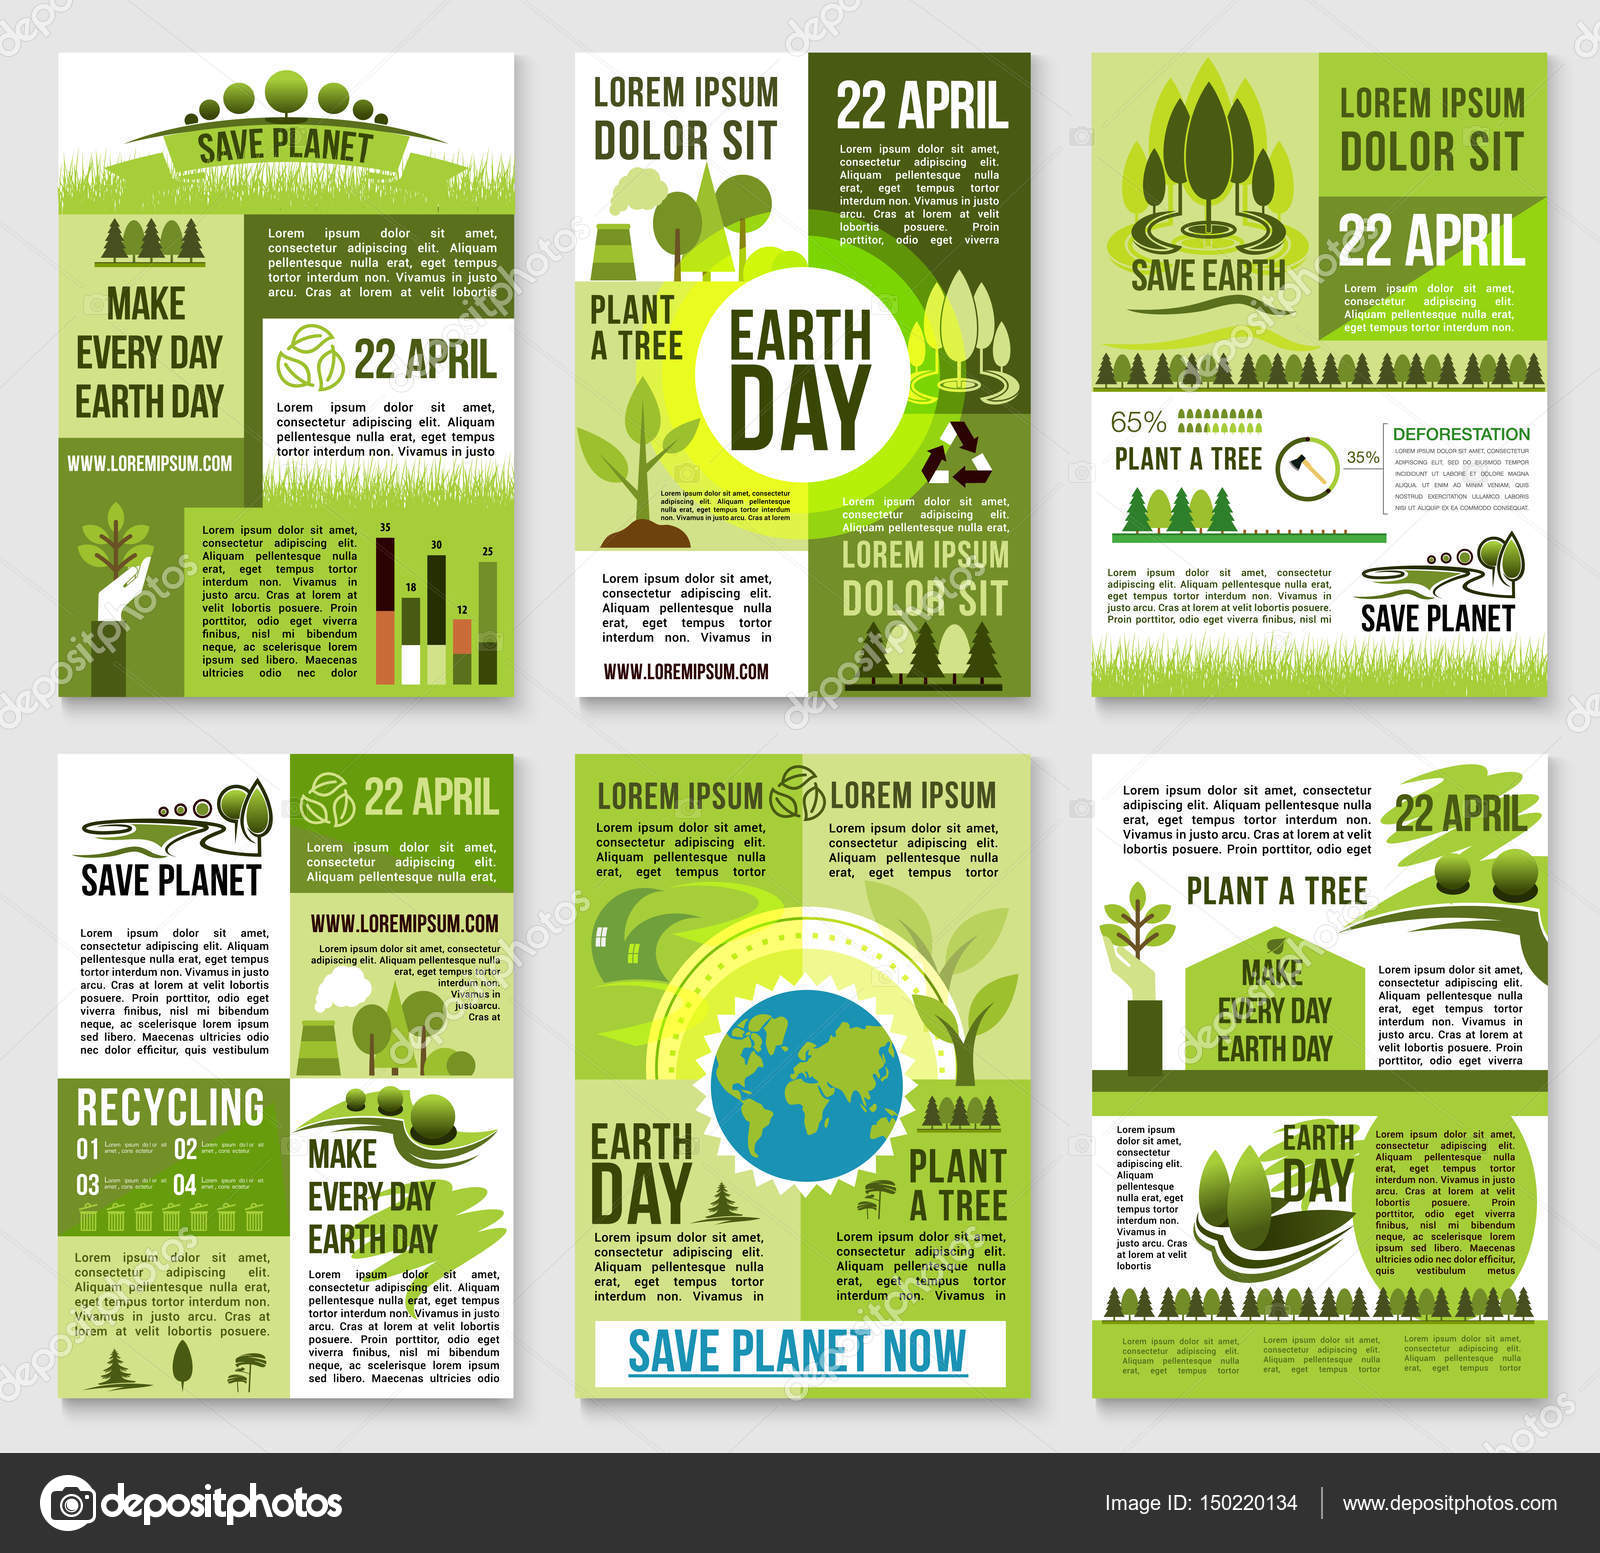 earth day poster template for ecology design  u2014 stock